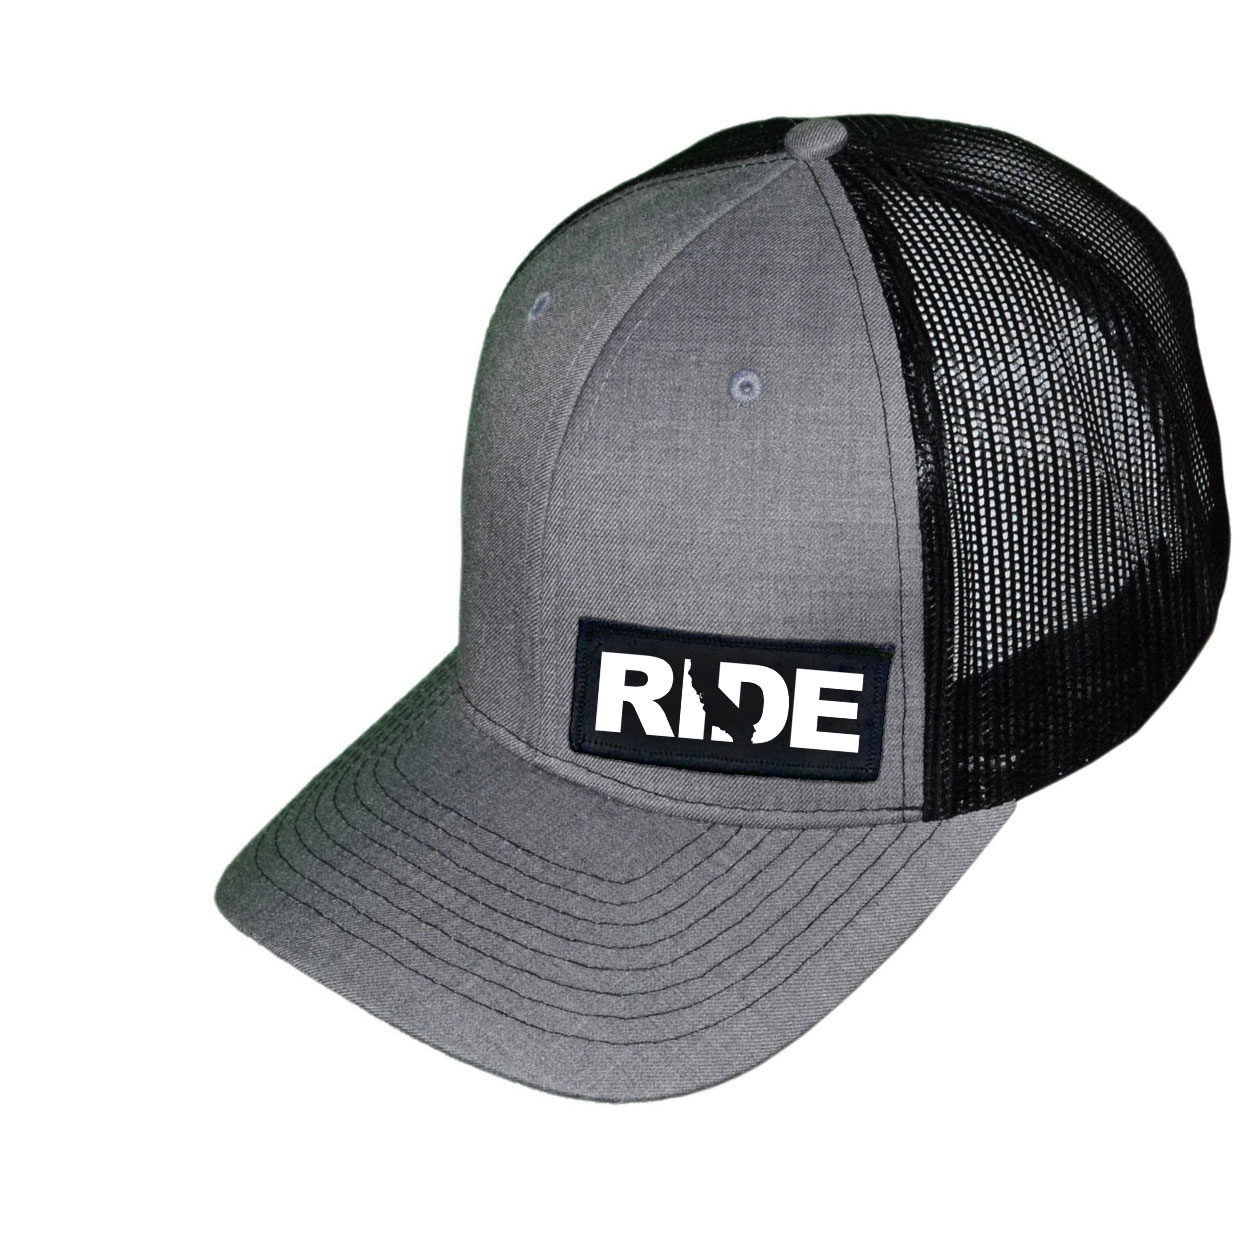 Ride California Night Out Woven Patch Snapback Trucker Hat Heather Gray/Black (White Logo)